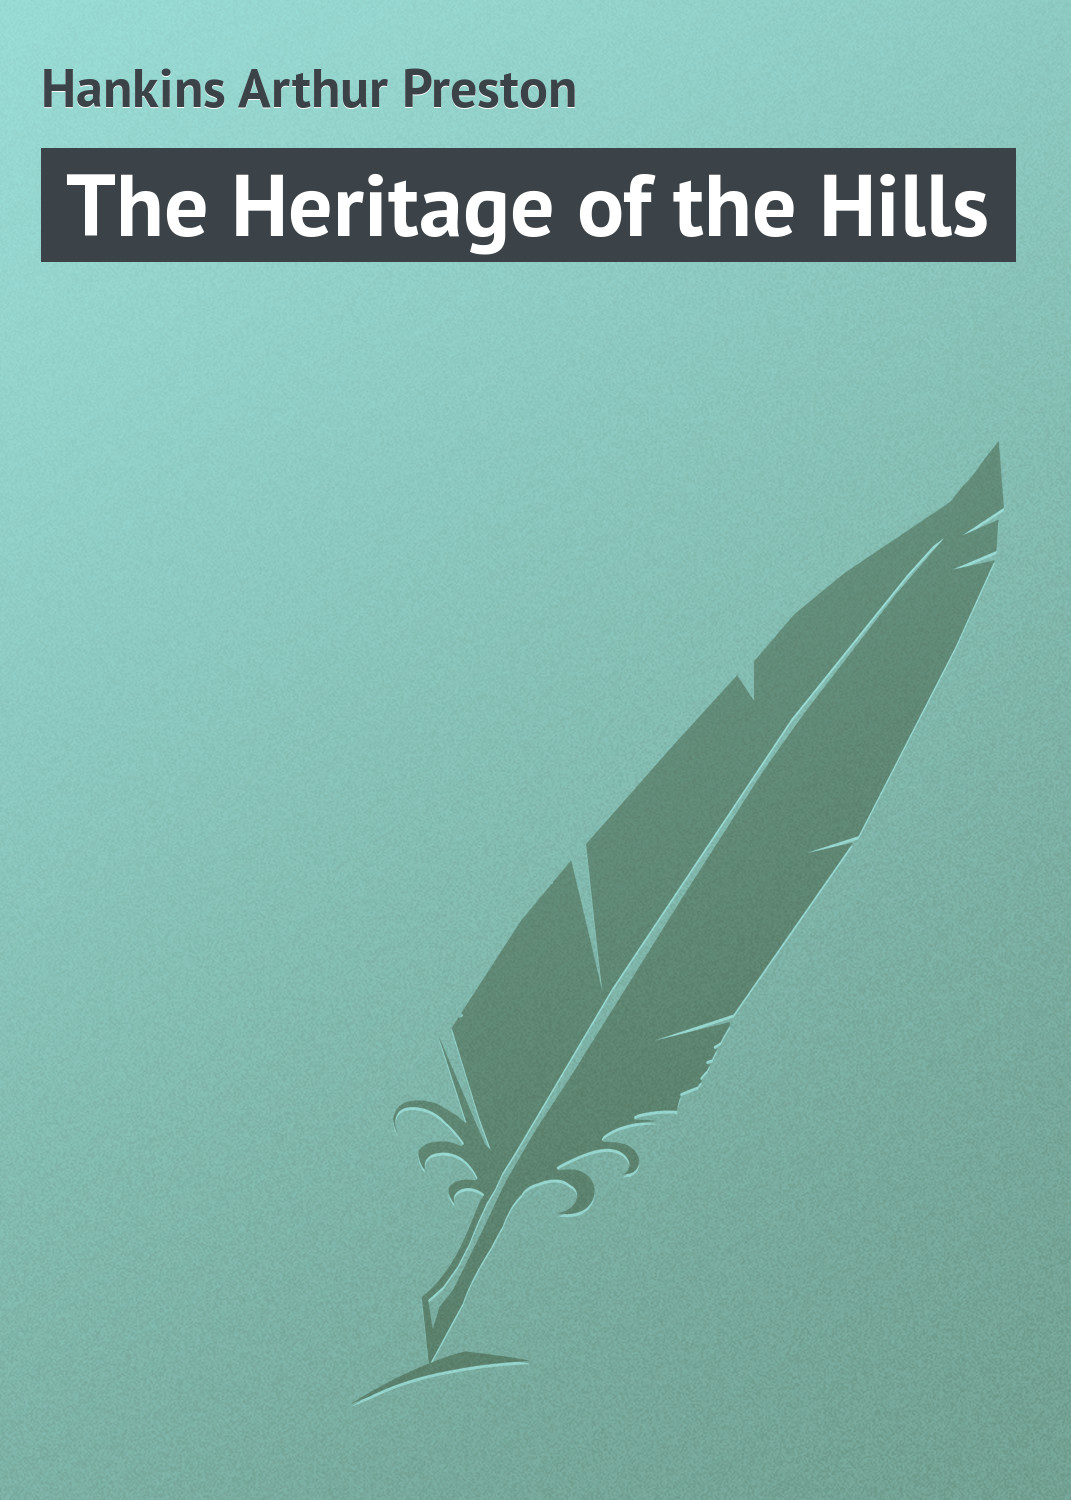 цена Hankins Arthur Preston The Heritage of the Hills